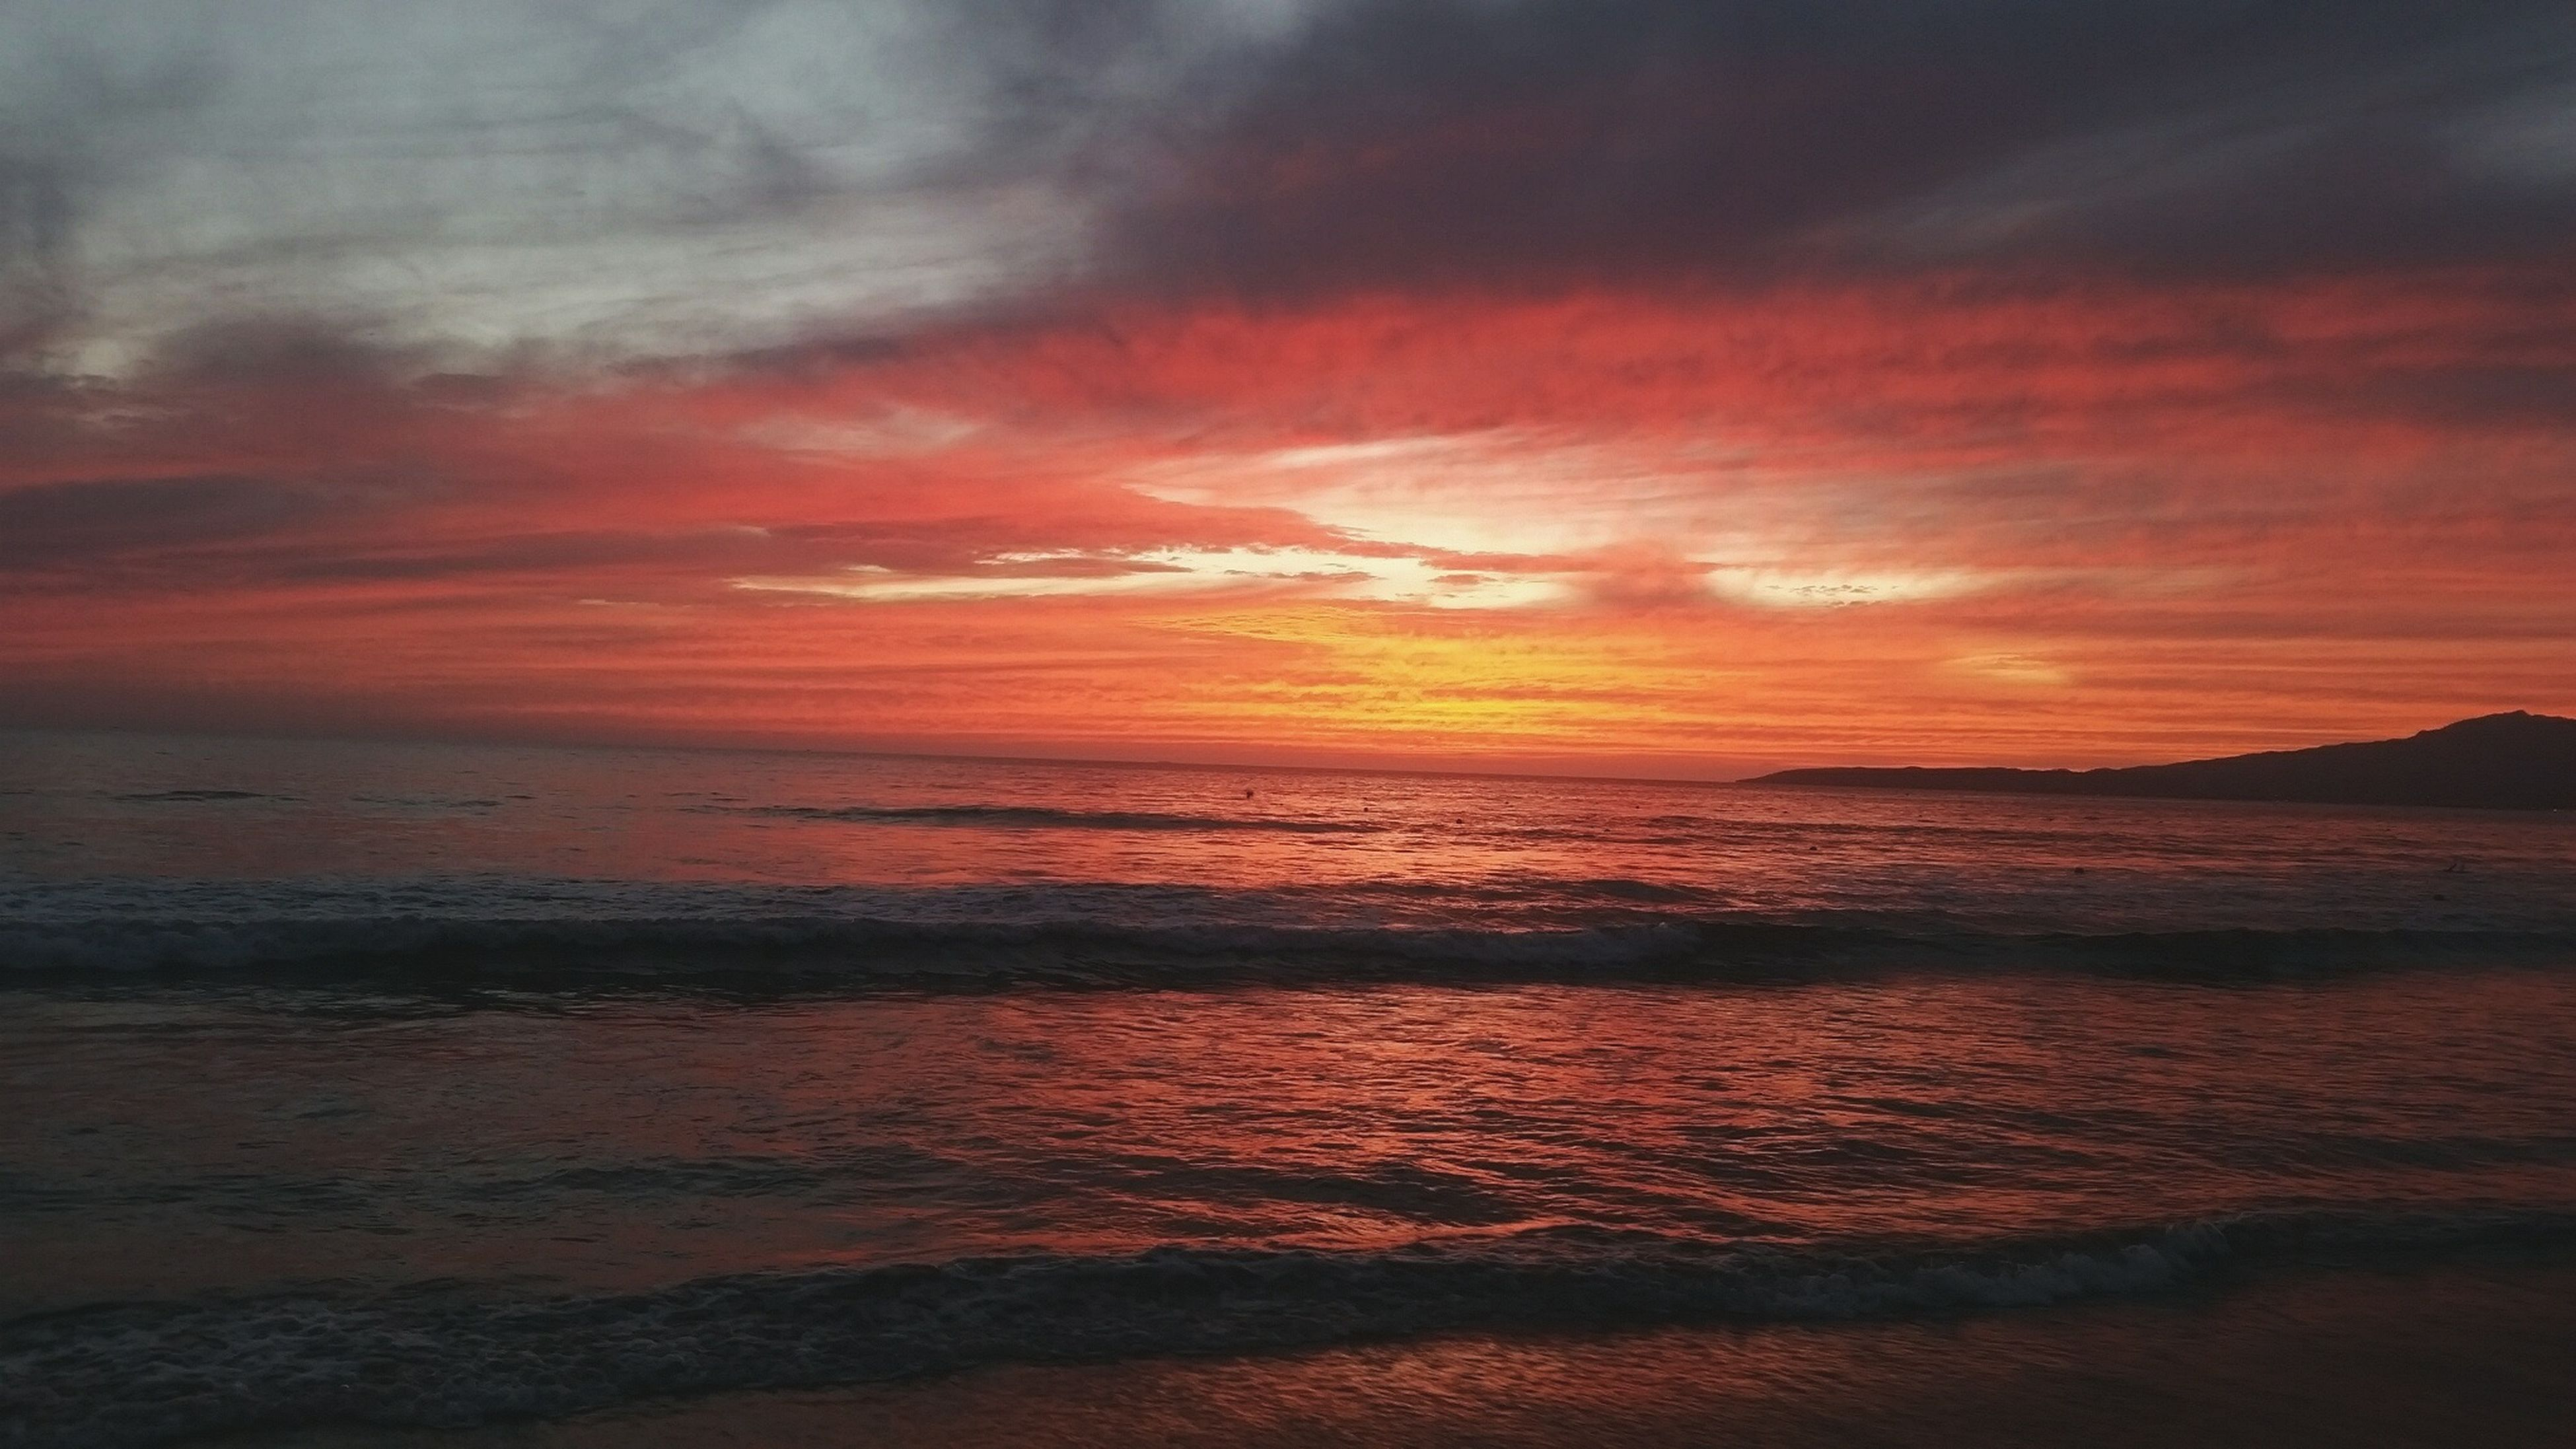 sea, sunset, beach, horizon over water, water, scenics, tranquil scene, beauty in nature, tranquility, sky, shore, orange color, idyllic, nature, sand, cloud - sky, wave, coastline, dramatic sky, remote